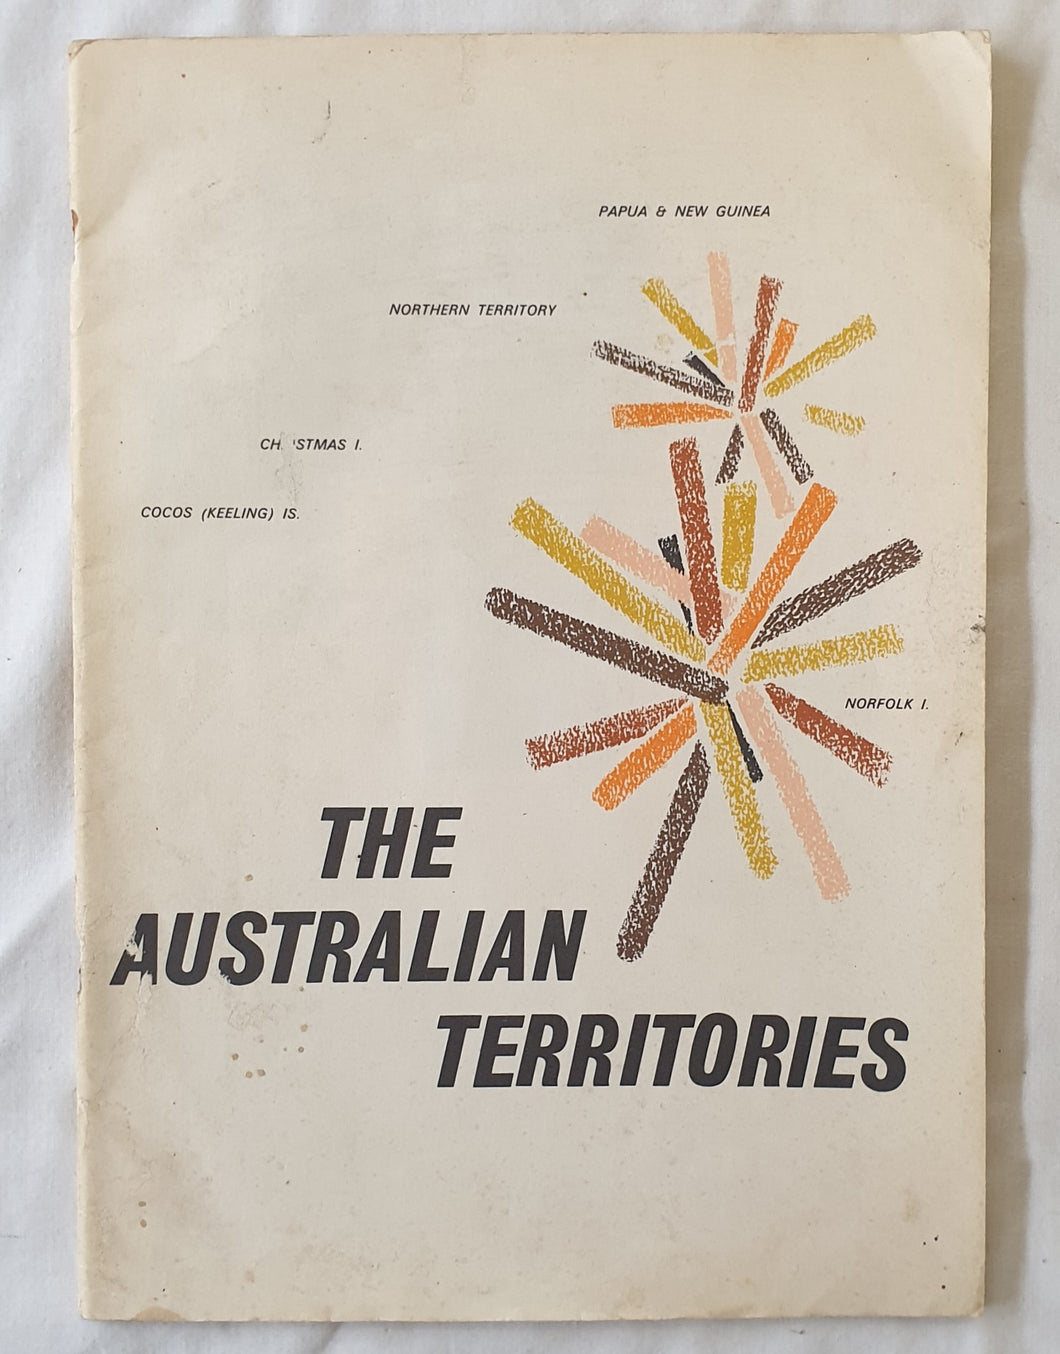 The Australian Territories